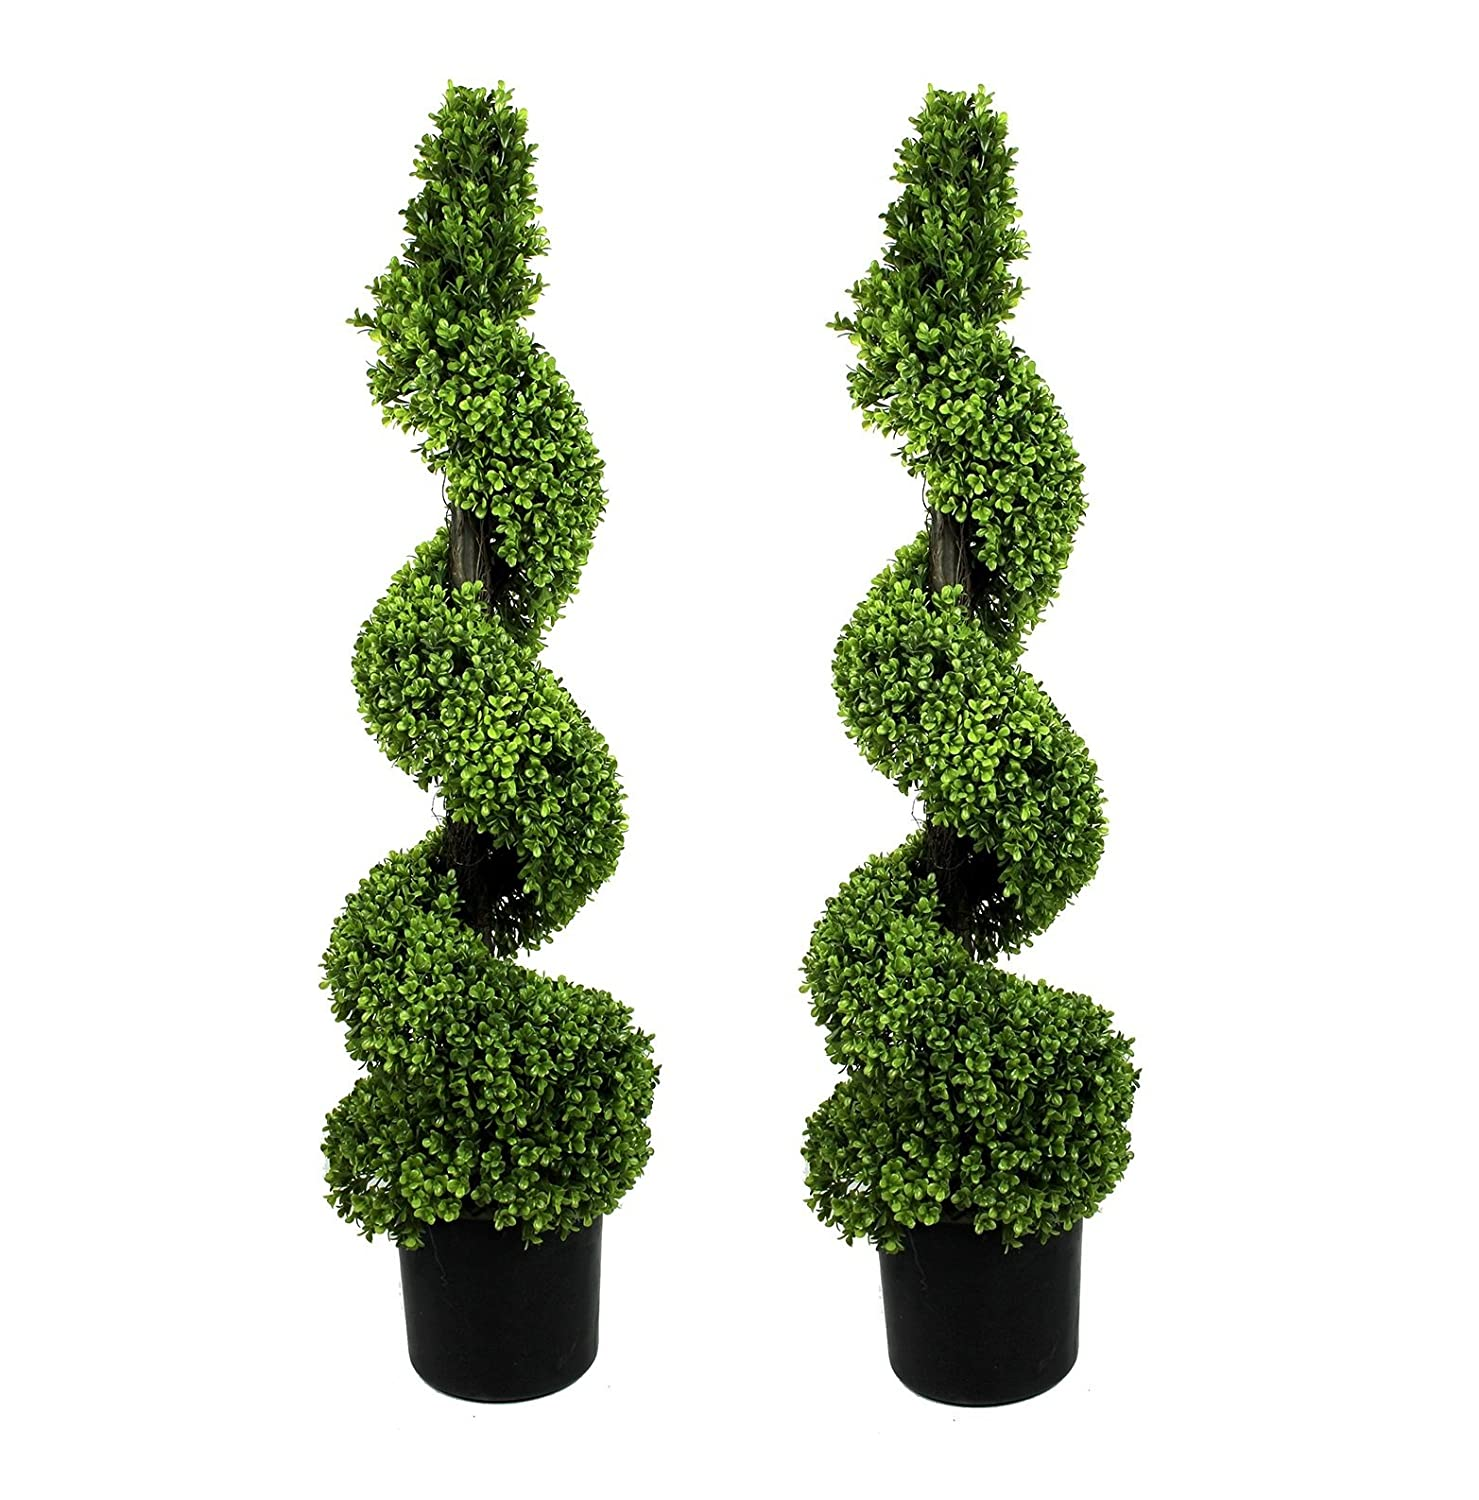 Marvelous Artificial Topiary Trees Cheap Part - 6: Artificial Topiary Boxwood Spiral Trees (4ft/120cm), Pack Of 2:  Amazon.co.uk: Garden U0026 Outdoors